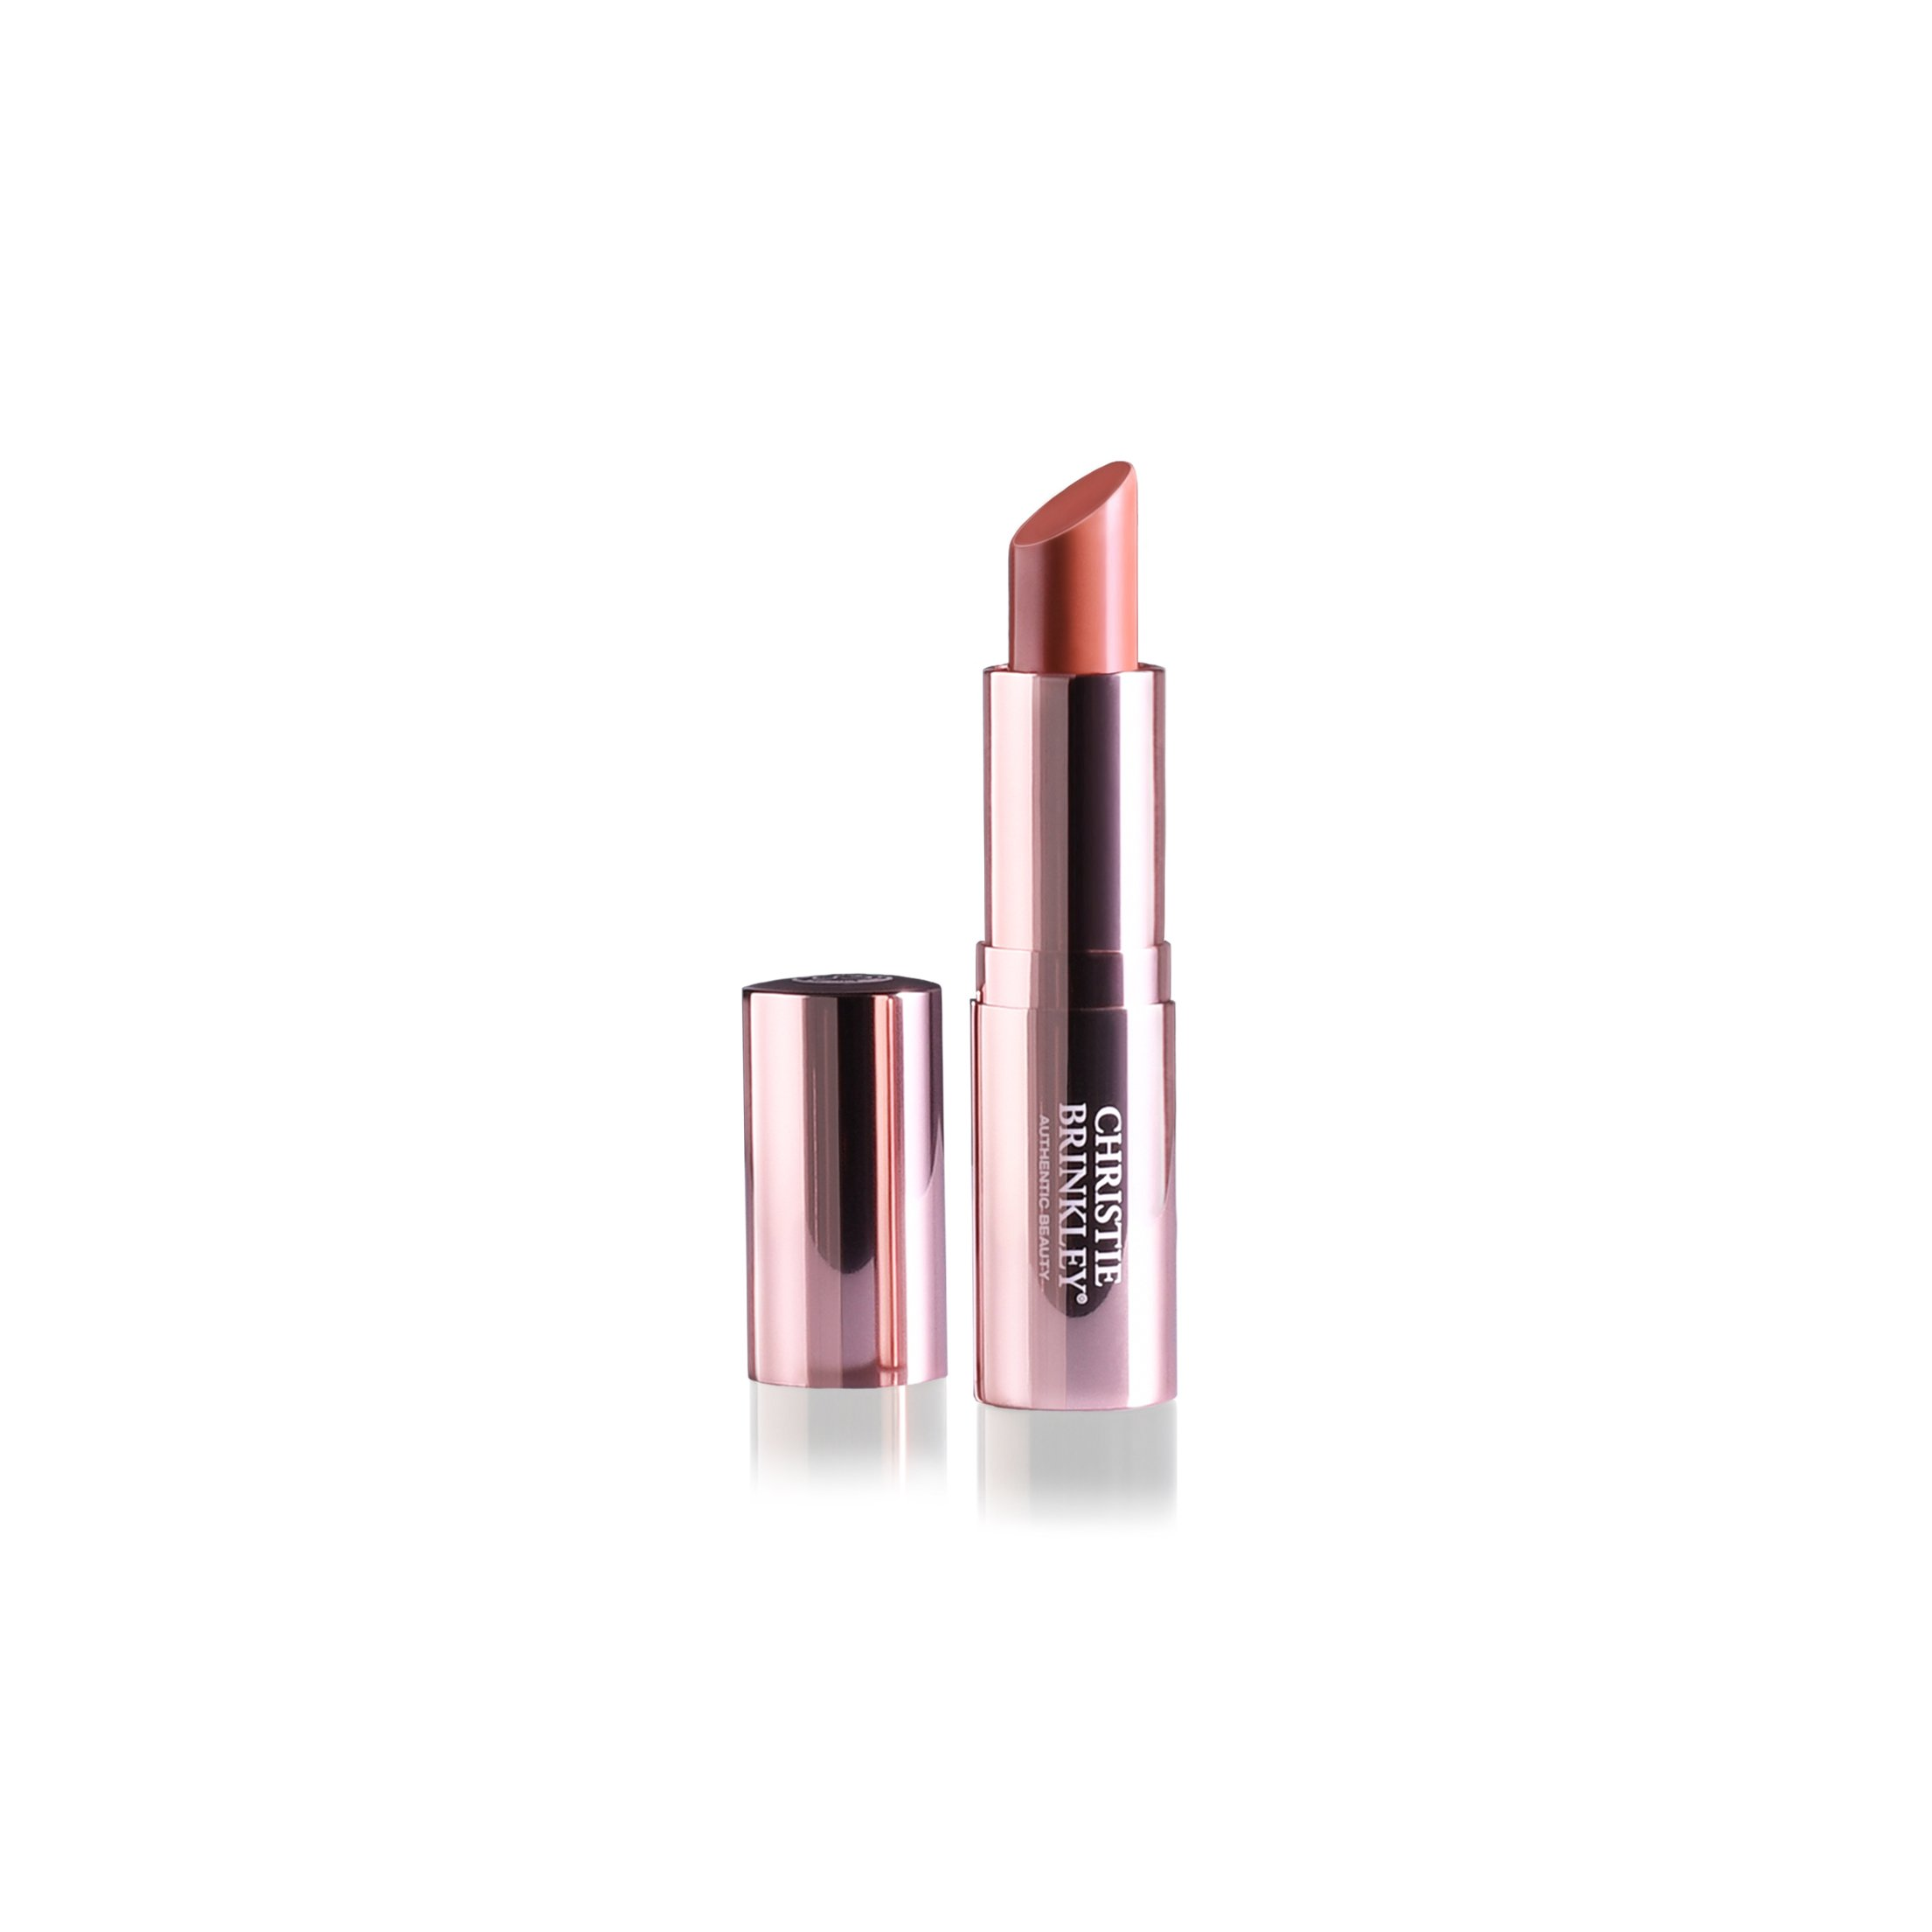 Christie Brinkley Authentic Beauty Lip Beautifully Moisture-Rich Lipstick, 0.14 oz (Bliss)